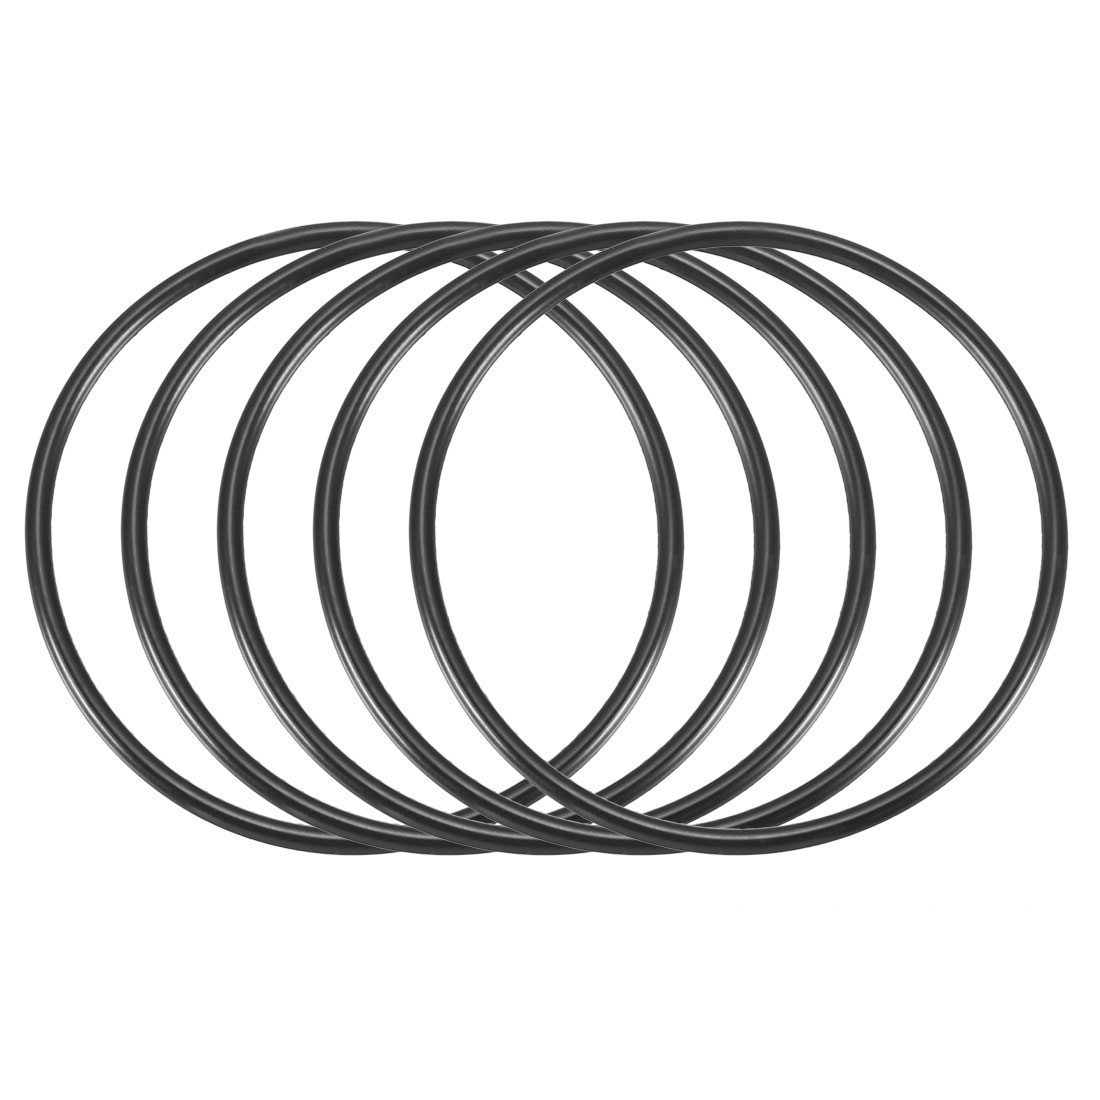 5 Pcs 55mm x 2.4mm Black Silicone O Rings Oil Seals Gaskets